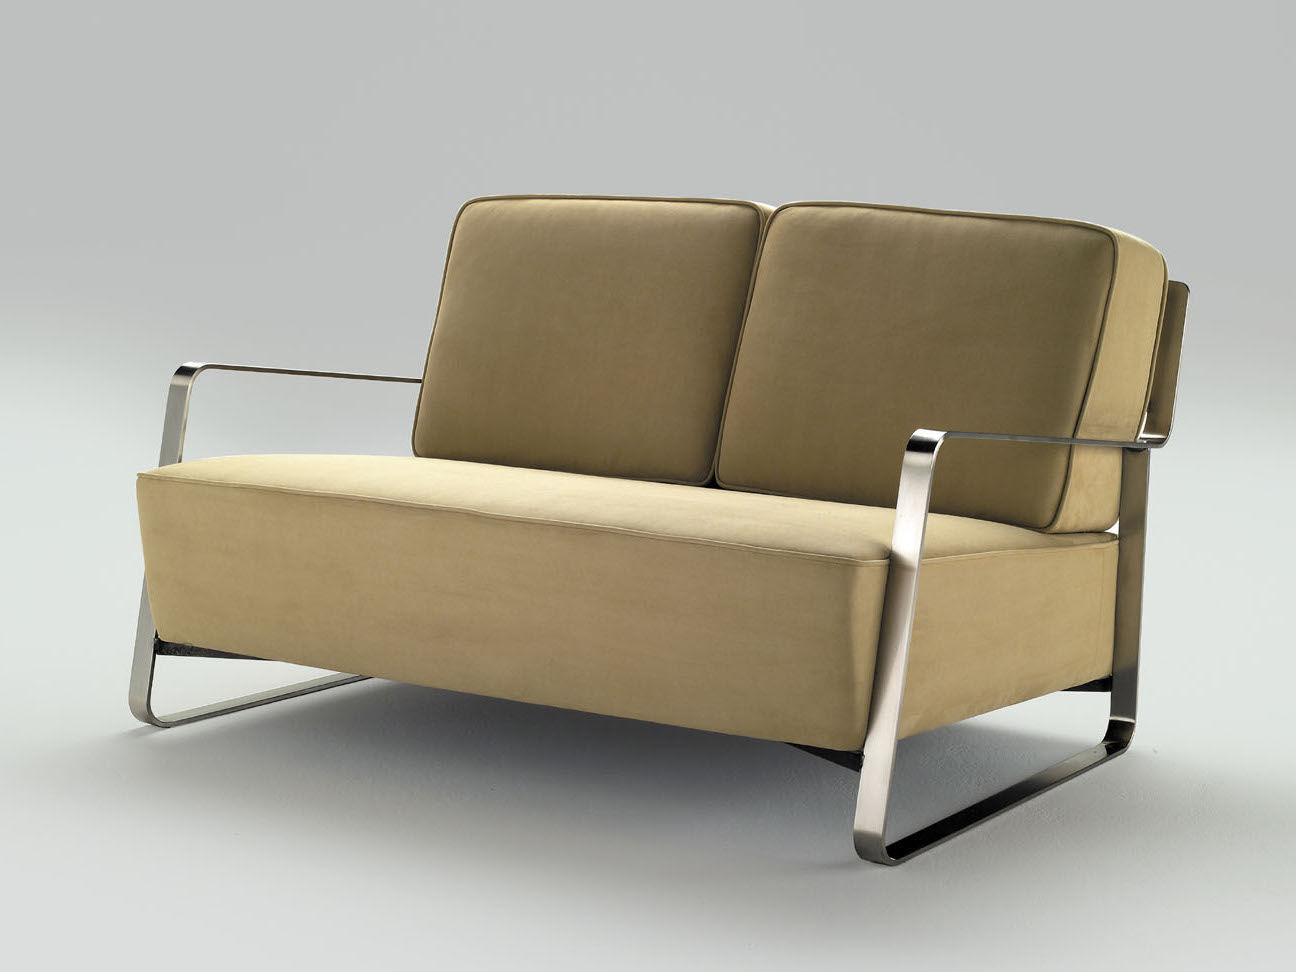 Fujiyama small sofa by orsenigo design umberto asnago for Sofas originales baratos